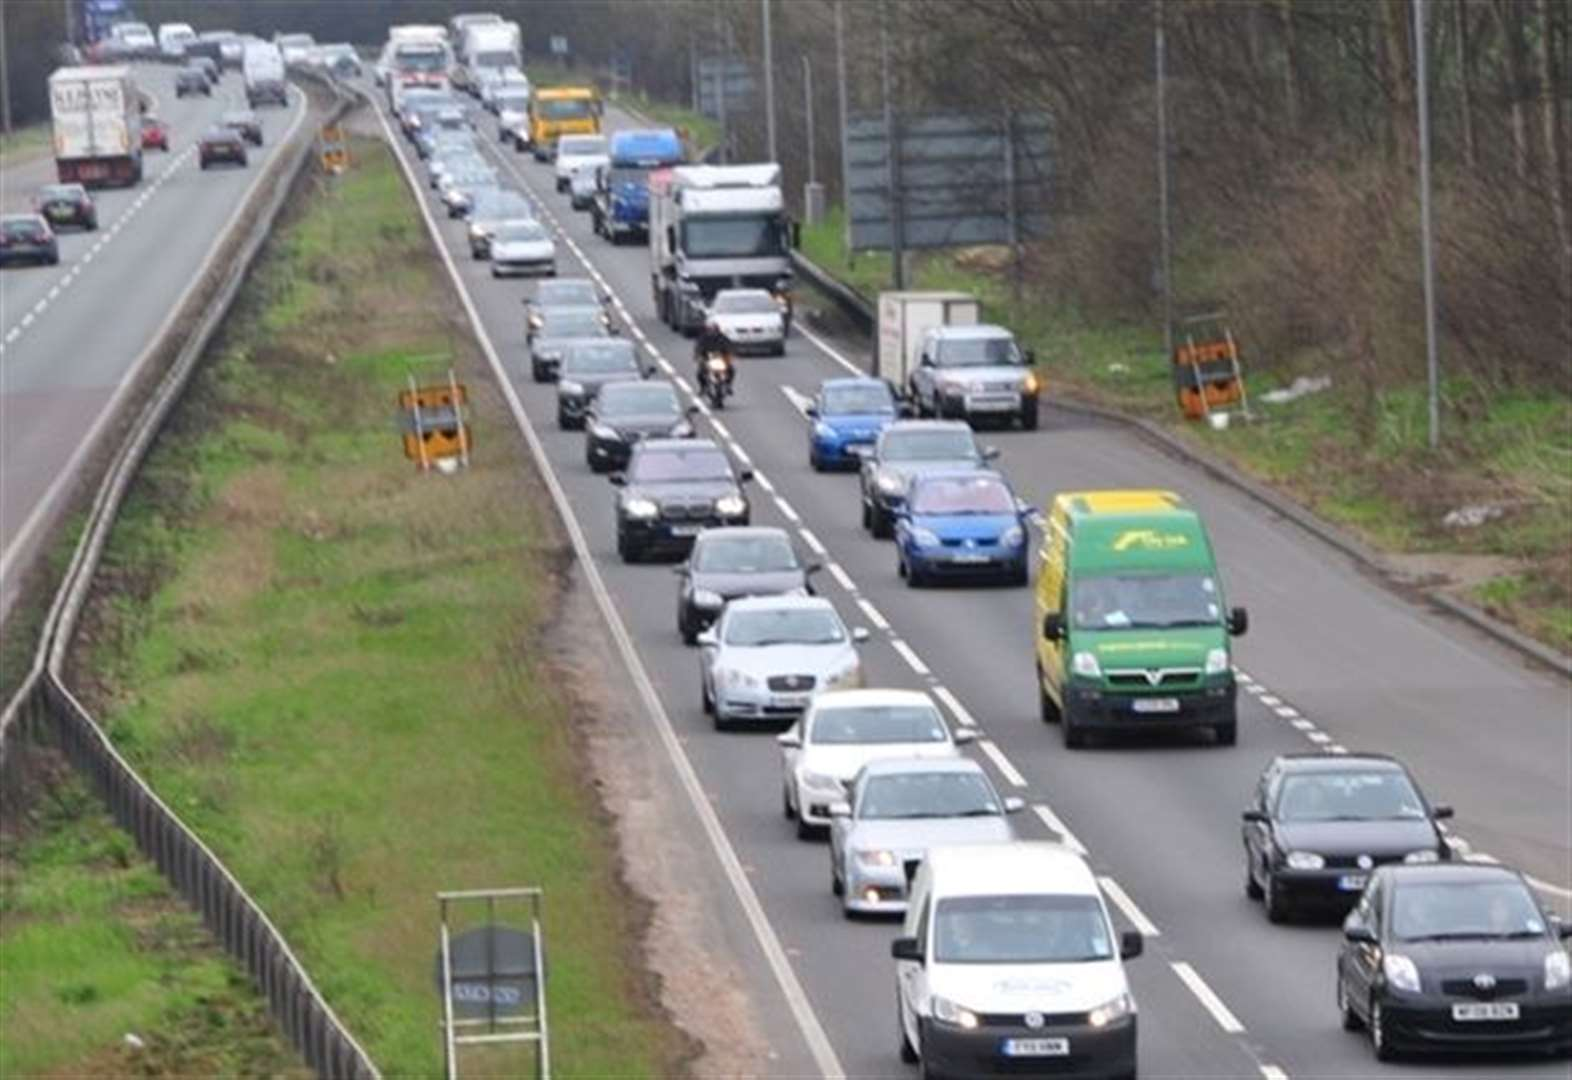 Severe delays on A1 between Stamford and Grantham again as van catches fire